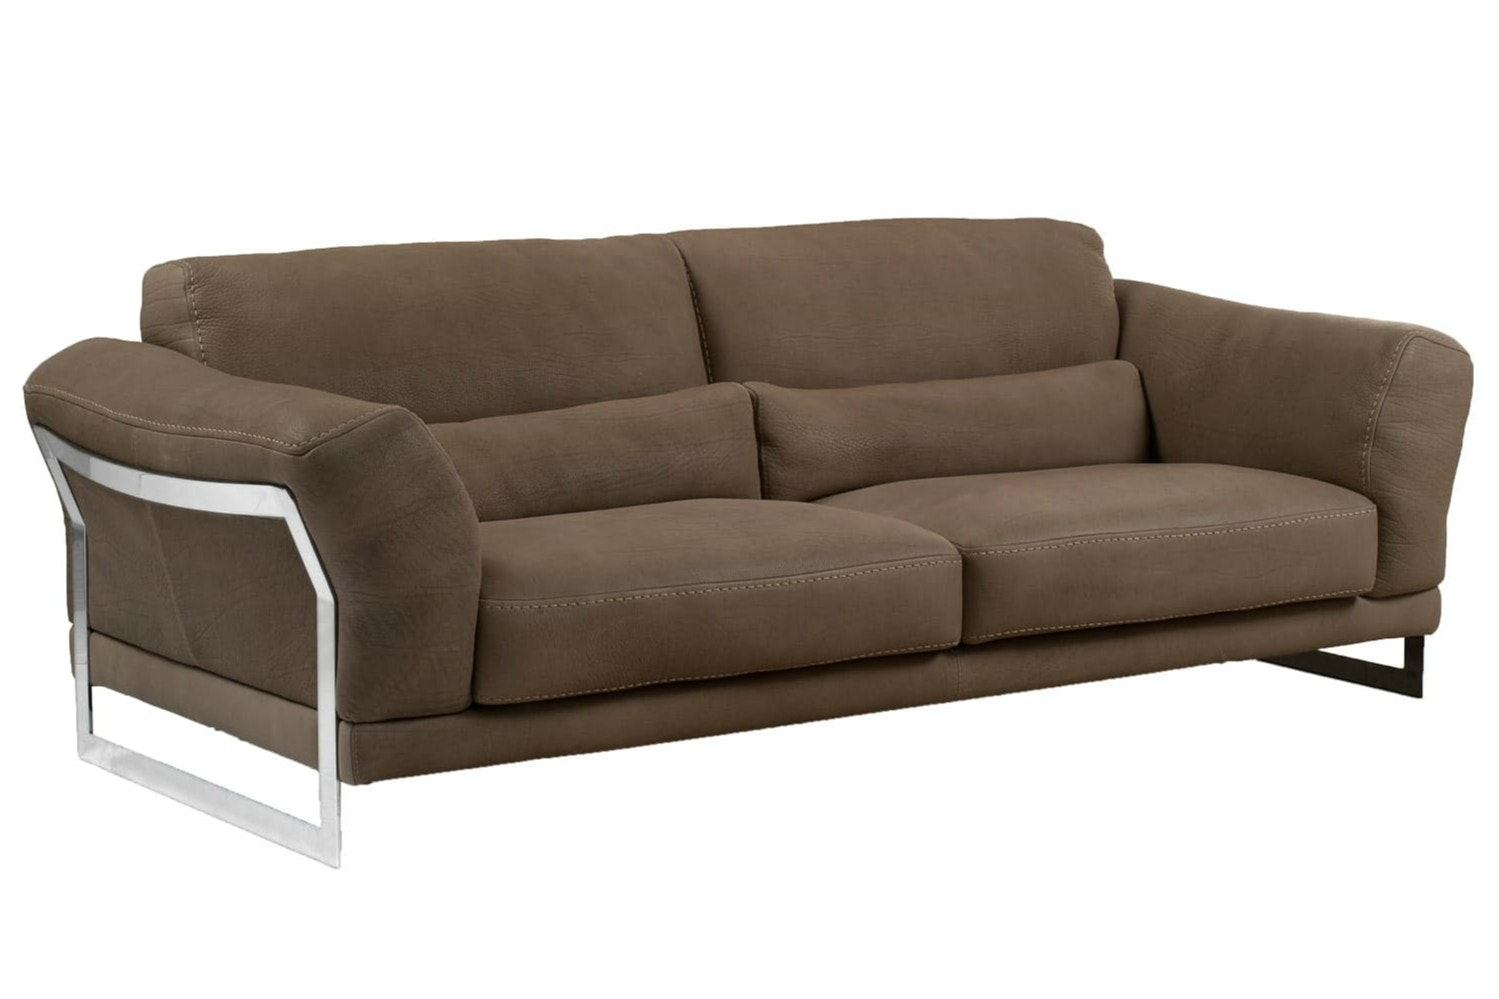 Giotto 2 Seater Sofa